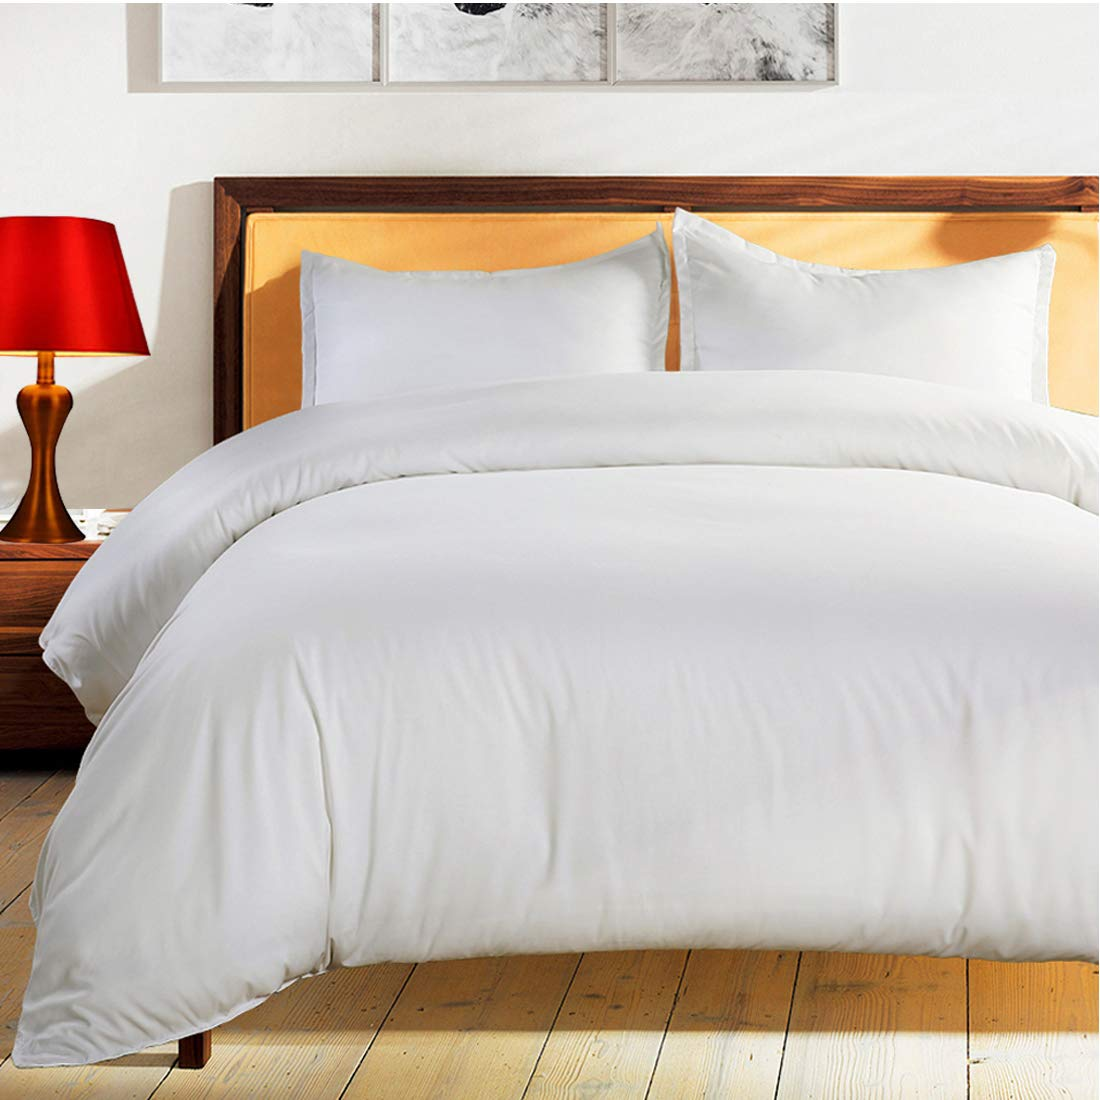 Balichun Duvet Cover Set King Size Premium with Zipper Closure Hotel Quality Hypoallergenic Wrinkle and Fade Resistant Ultra Soft -3 Piece-1 Soft Microfiber Duvet Cover Matching 2 Pillow Shams